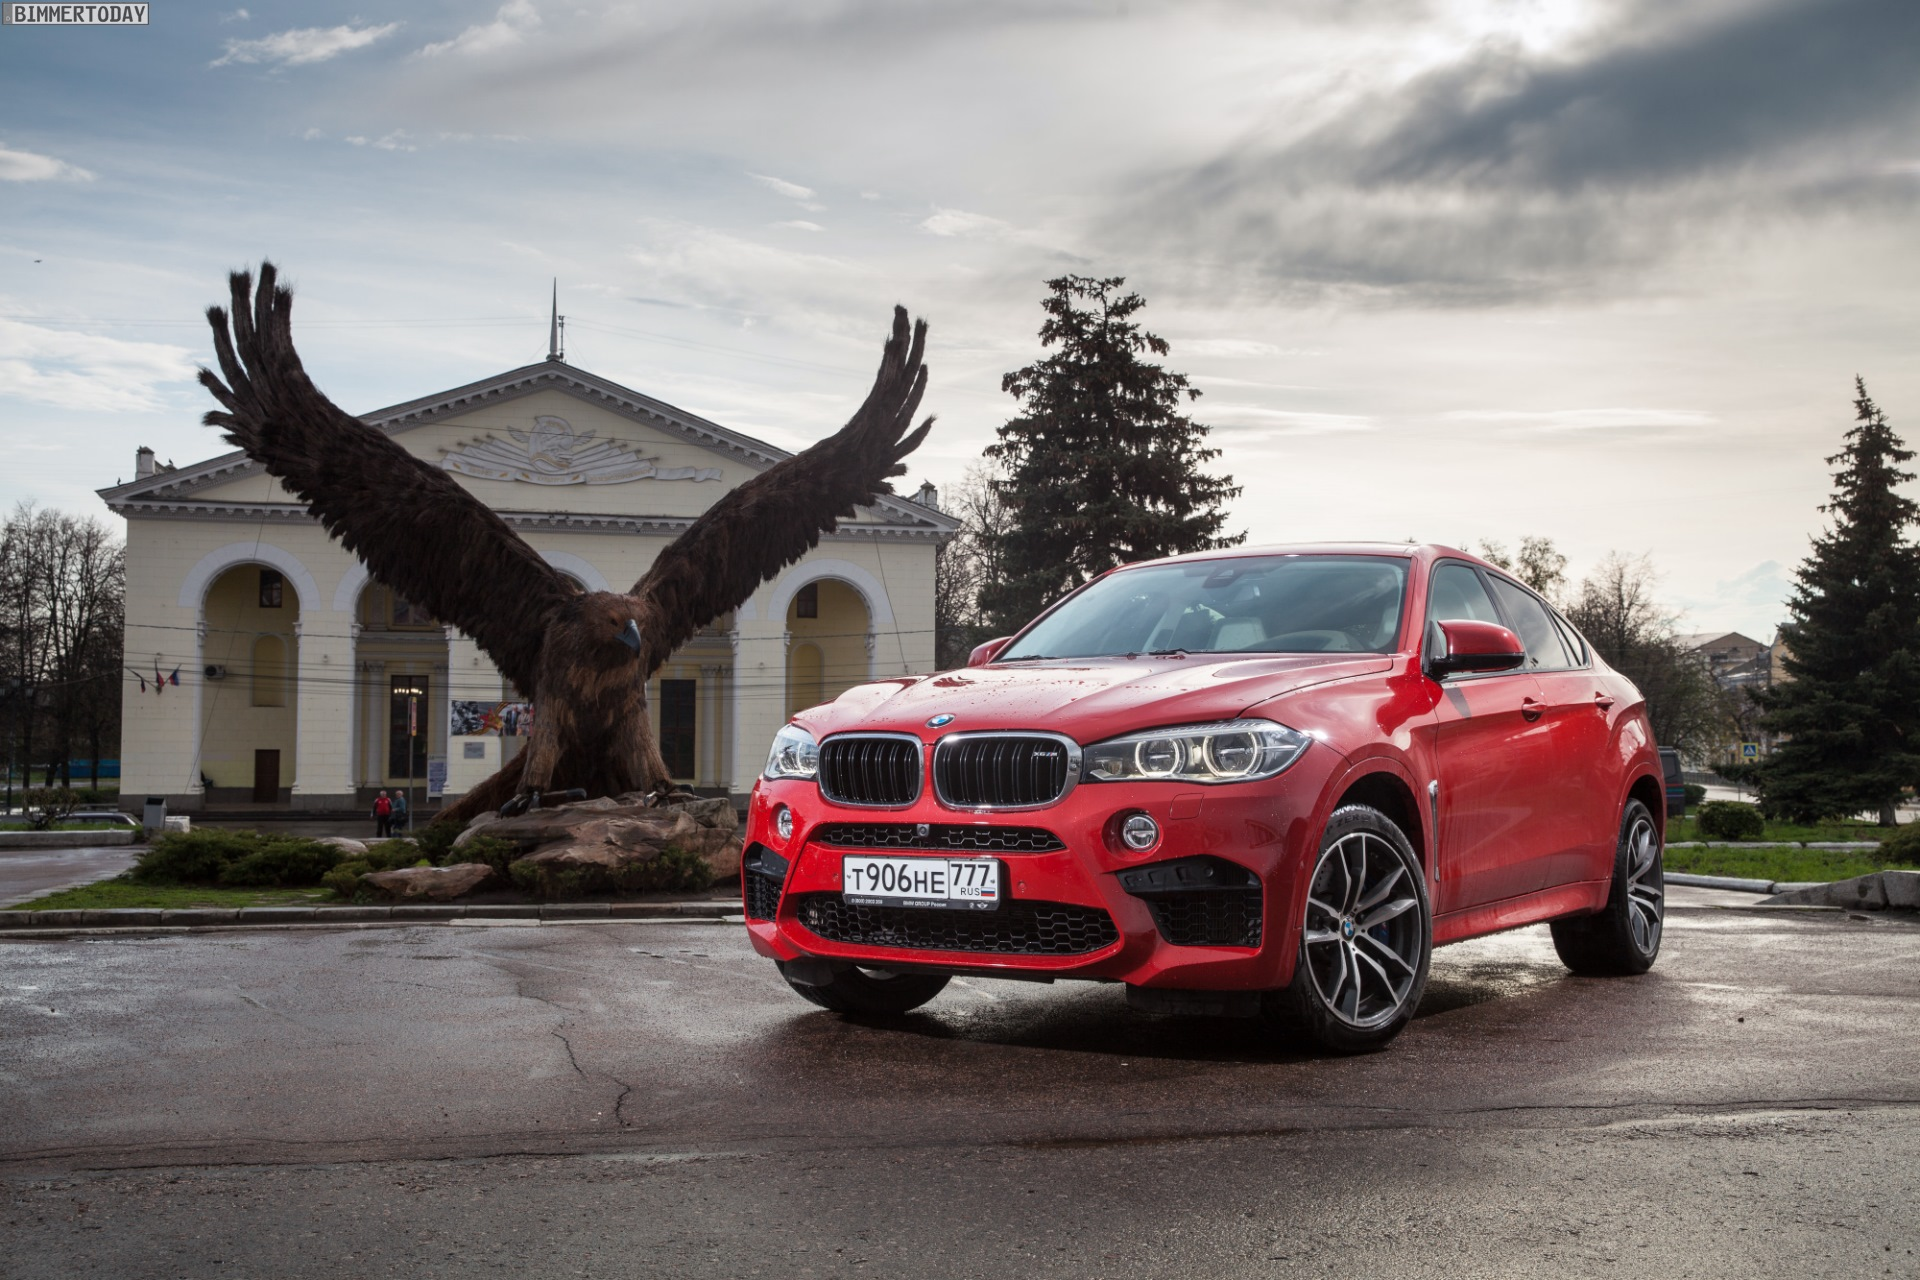 BMW X6 M F86 Melbourne Rot Red 10